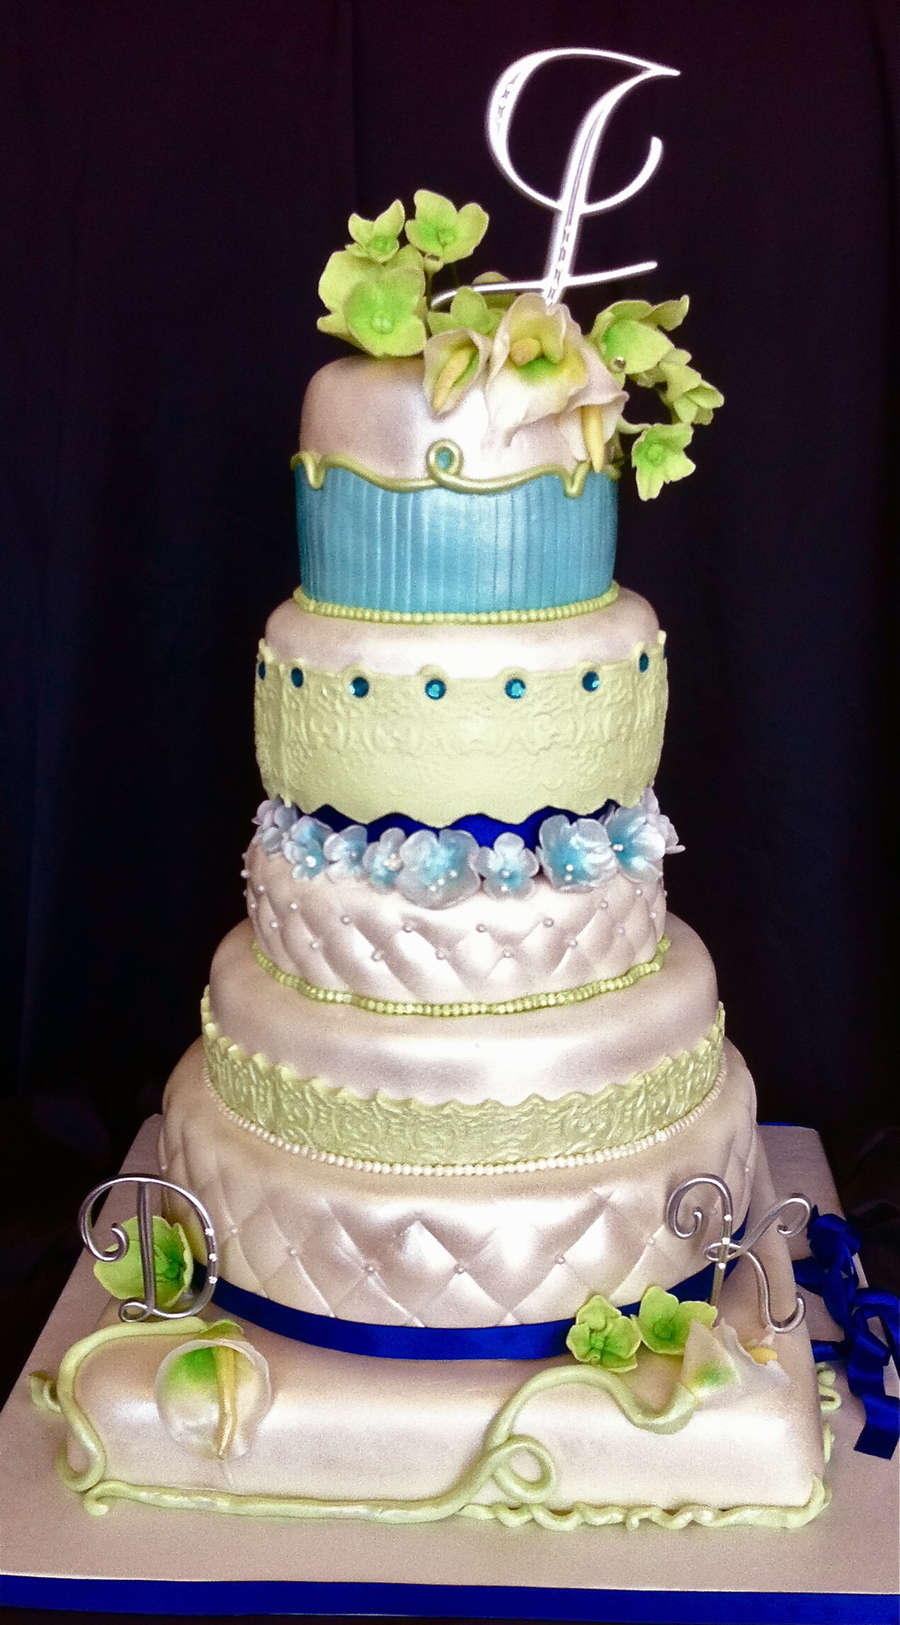 Sky Blue And Lime Green Wedding Cake - CakeCentral.com